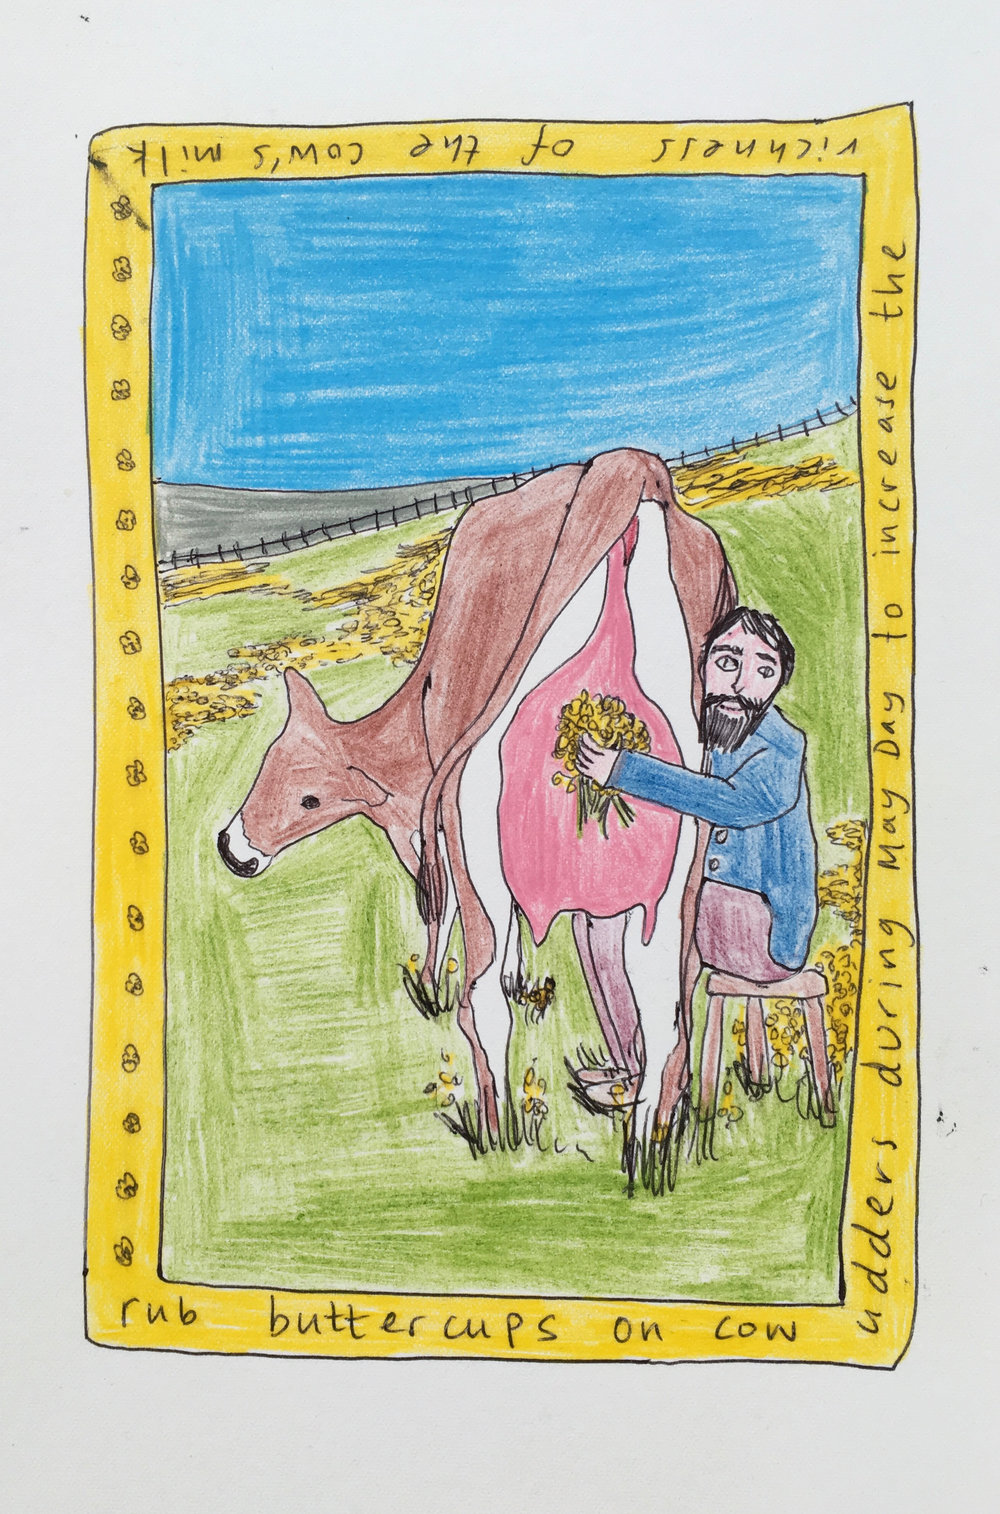 Rub buttercups on cow udders during May Day to increase the richness of the cow's milk, Plant Tales Series (Prints available).